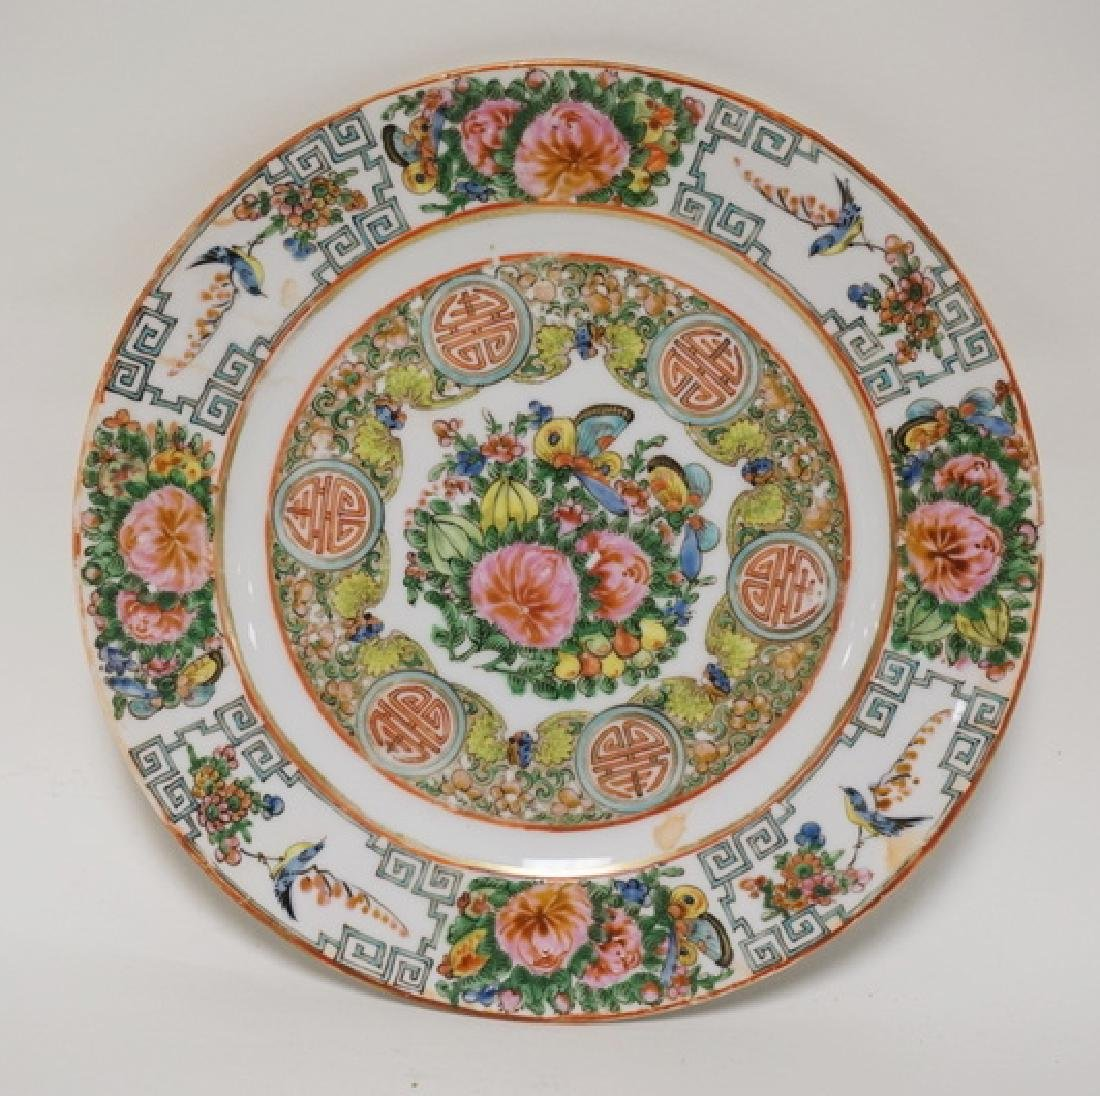 ANTIQUE ASIAN PORCELAIN PLATE DECORATED WITH BIRDS,